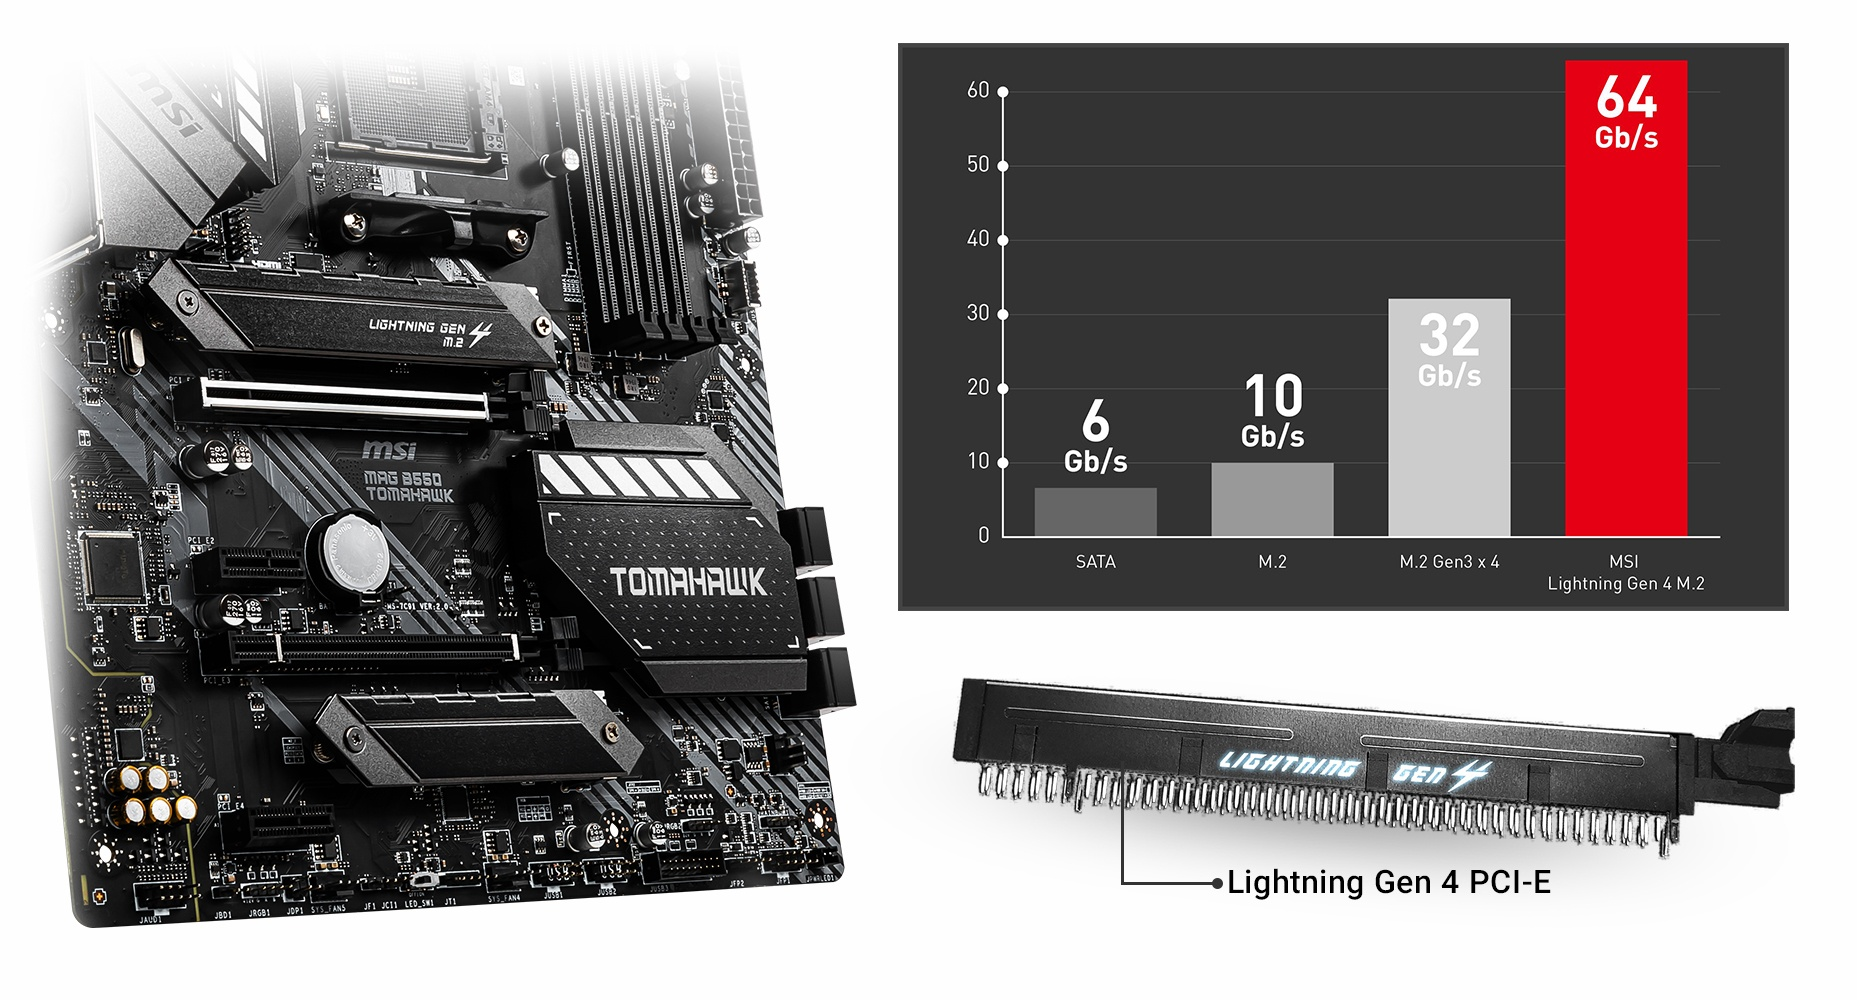 the chart of the motherboard between SATA, M.2 M.2 Gen3x4 and MSI